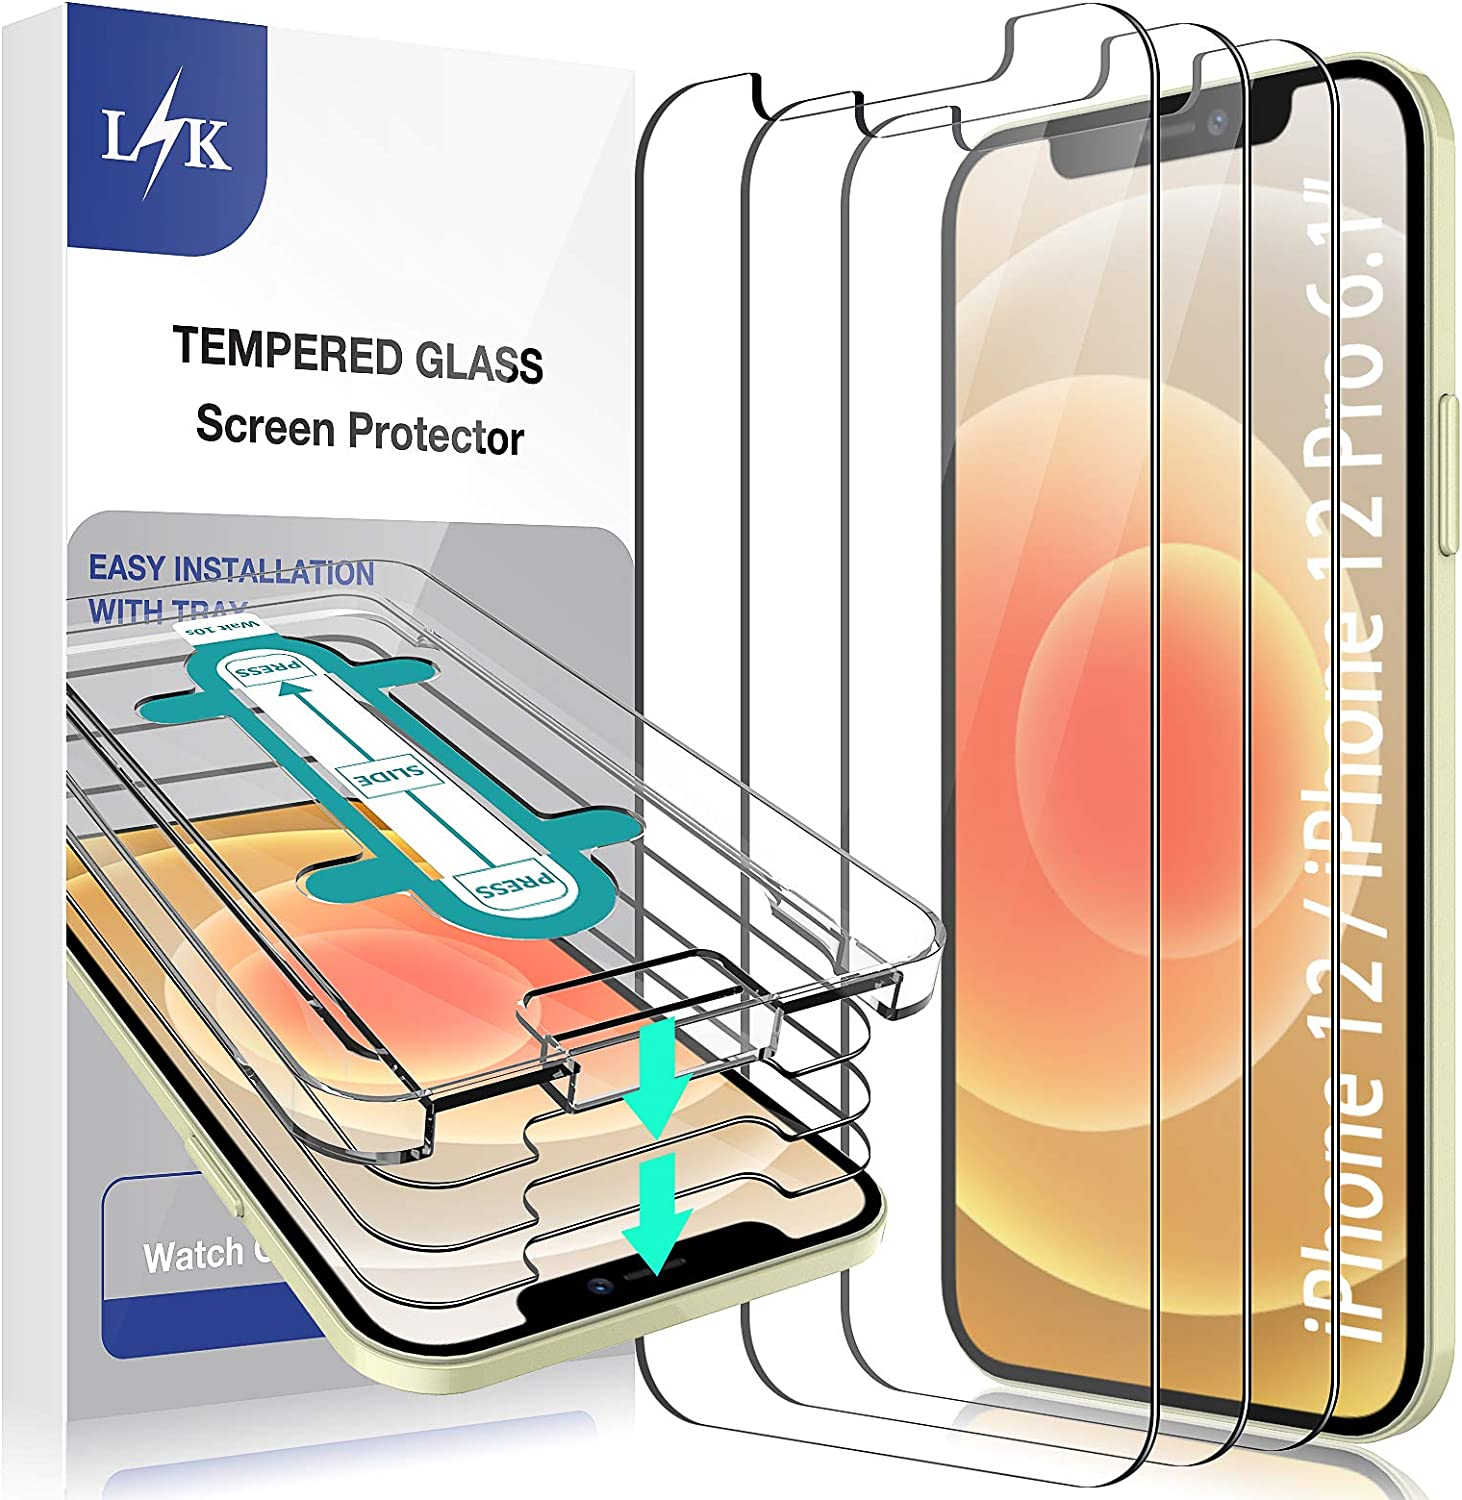 LϟK [3 Pack] Screen Protector Compatible With iPhone 12 / iPhone 12 Pro 5G 6.1 inch Tempered Glass Film [Easy Installation Kit] Full Protection Durable, HD Clear, Case Friendly